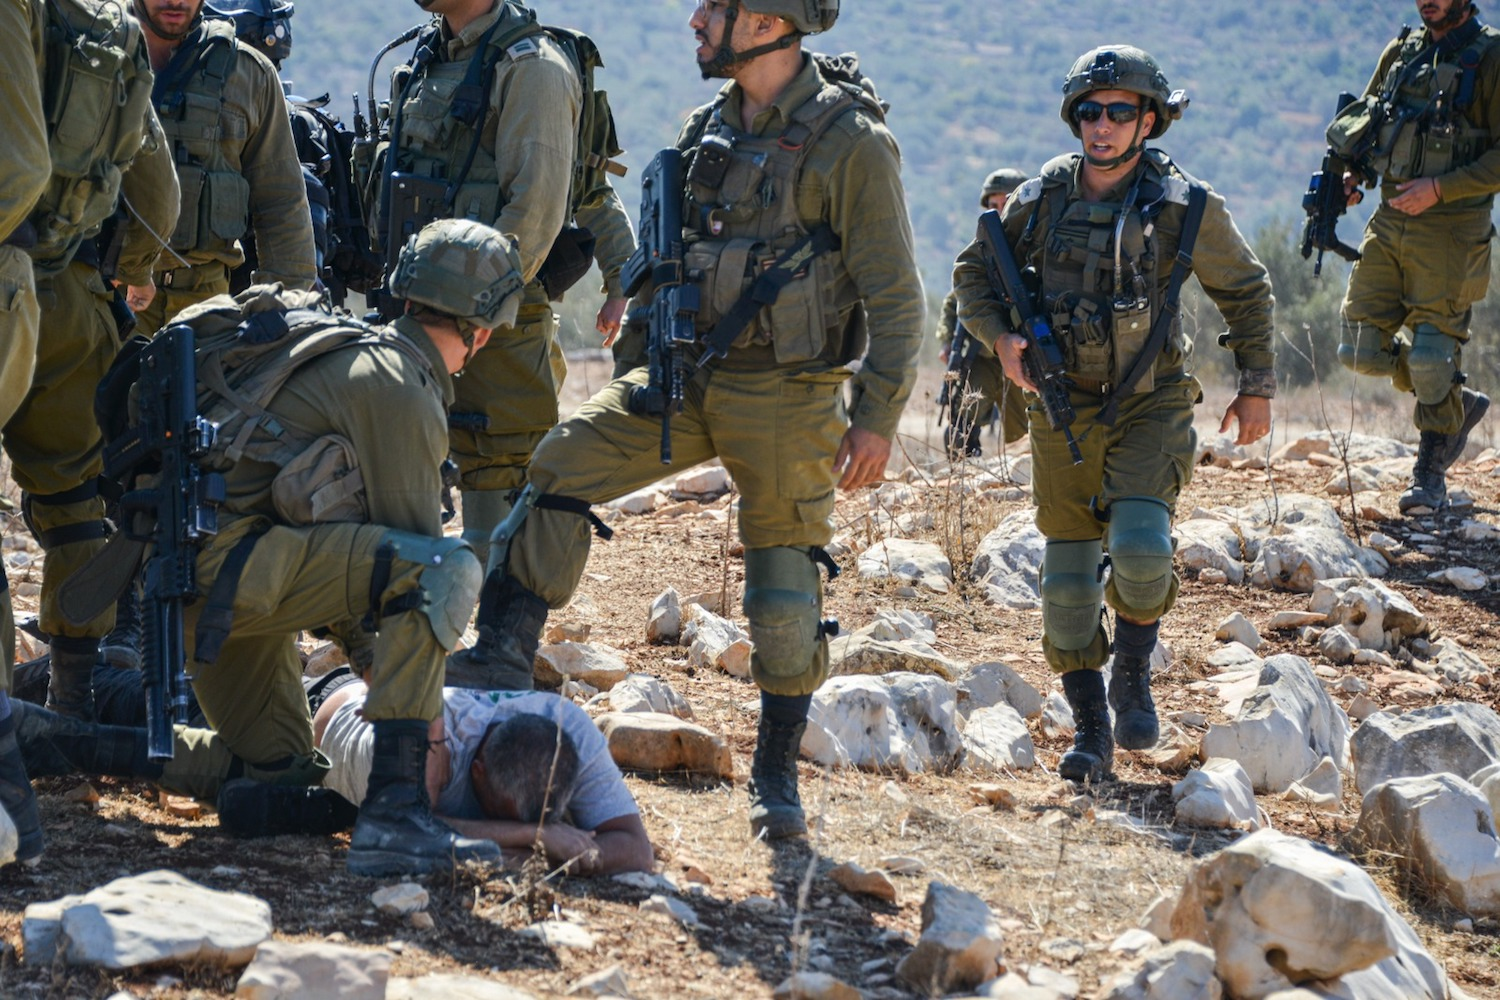 Israeli soldiers hold down and step on prominent Palestinian activist Mohammad Khatib during the olive harvest near a settlement outpost established on Palestinian land in the Salfit area of the West Bank, October 11, 2021. (Matan Golan)